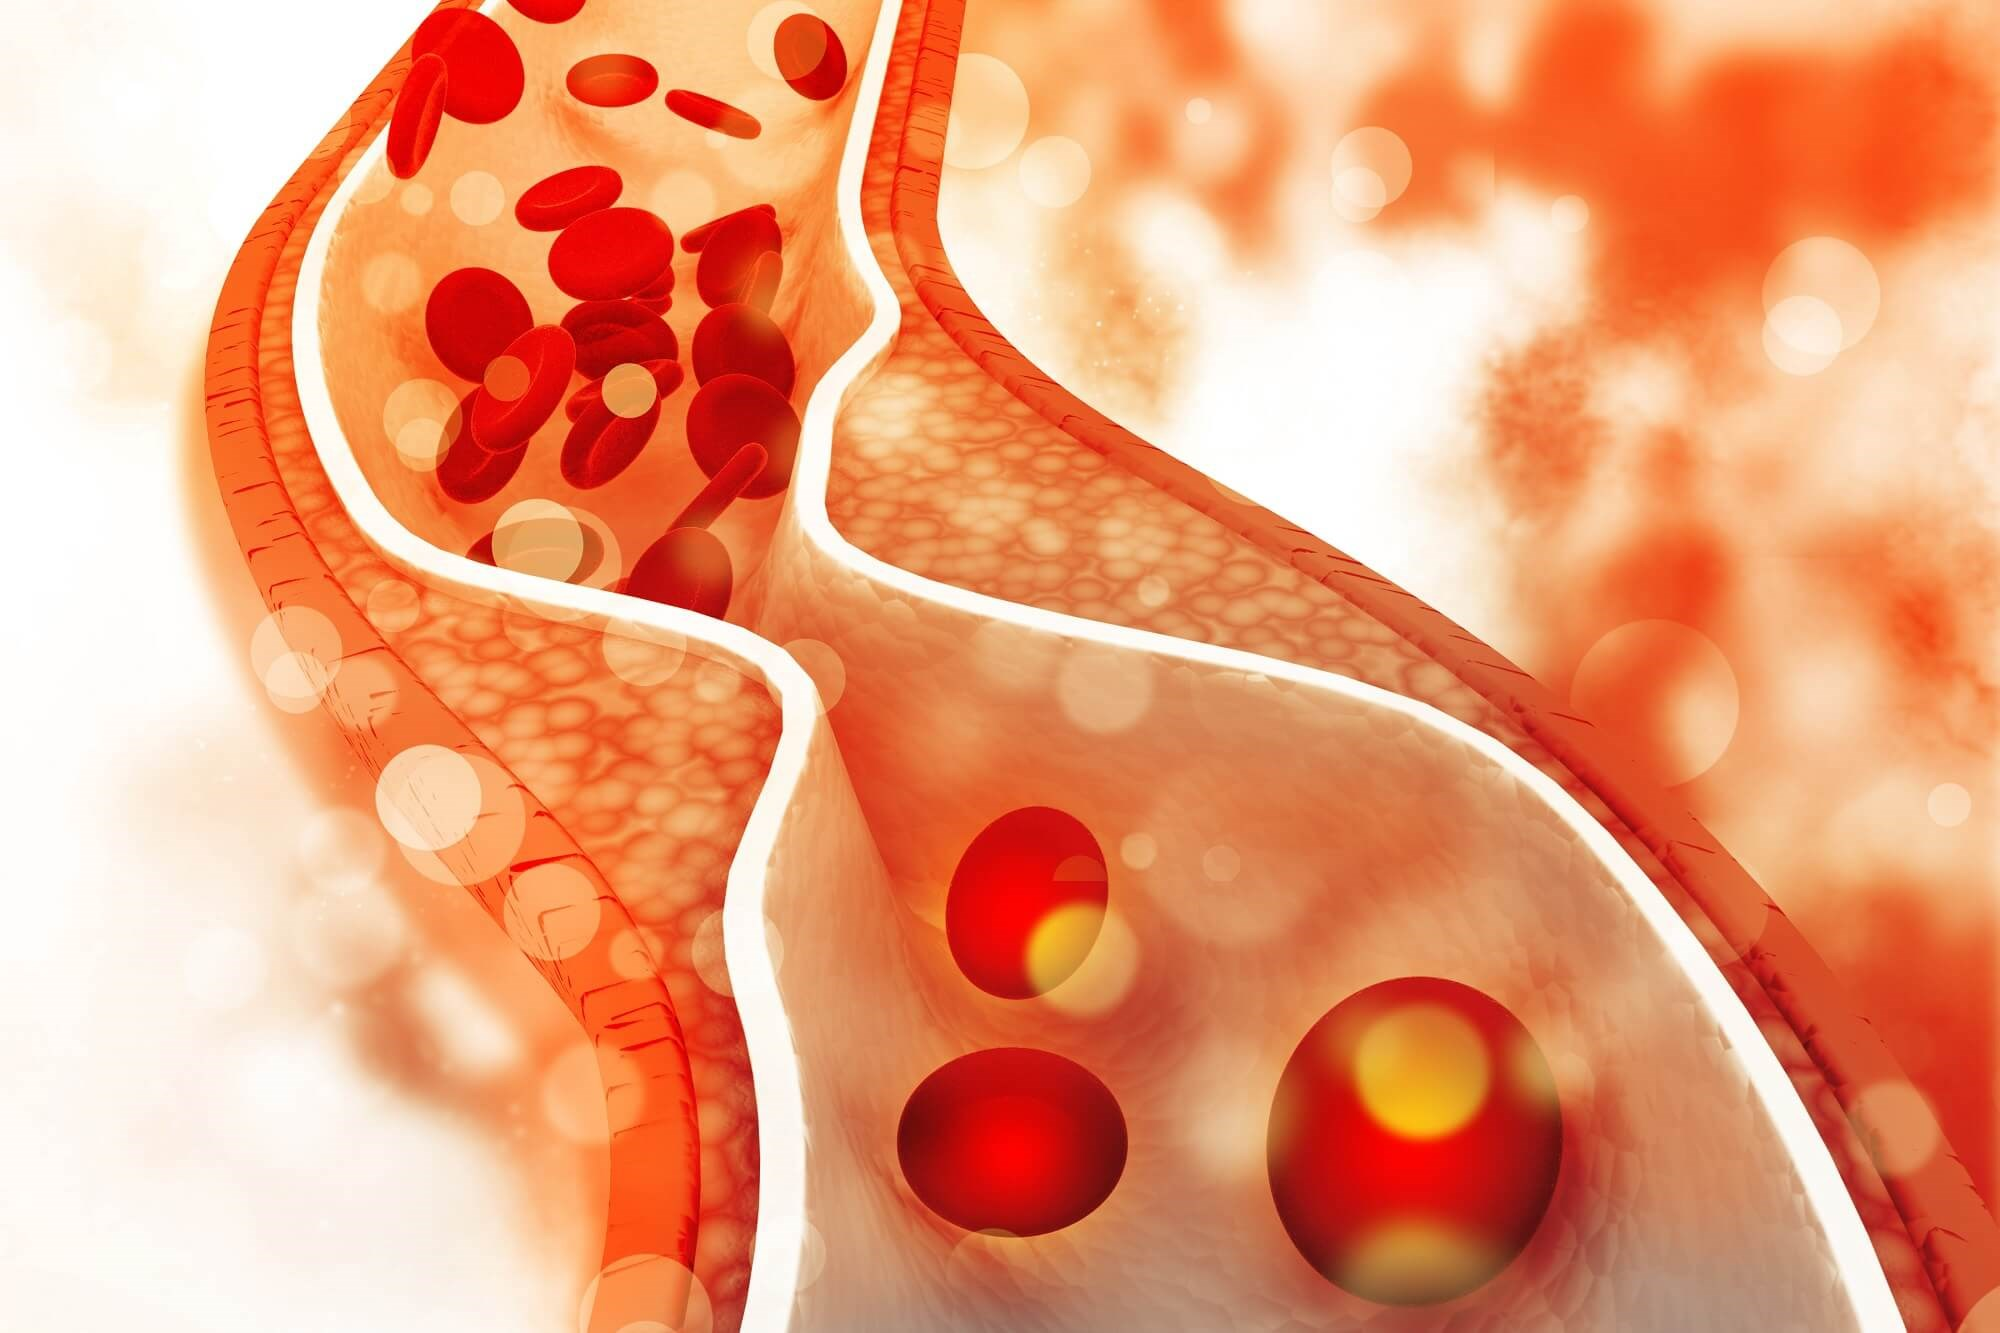 Total CV Event Reduction More Effectively Assesses Alirocumab Efficacy After ACS